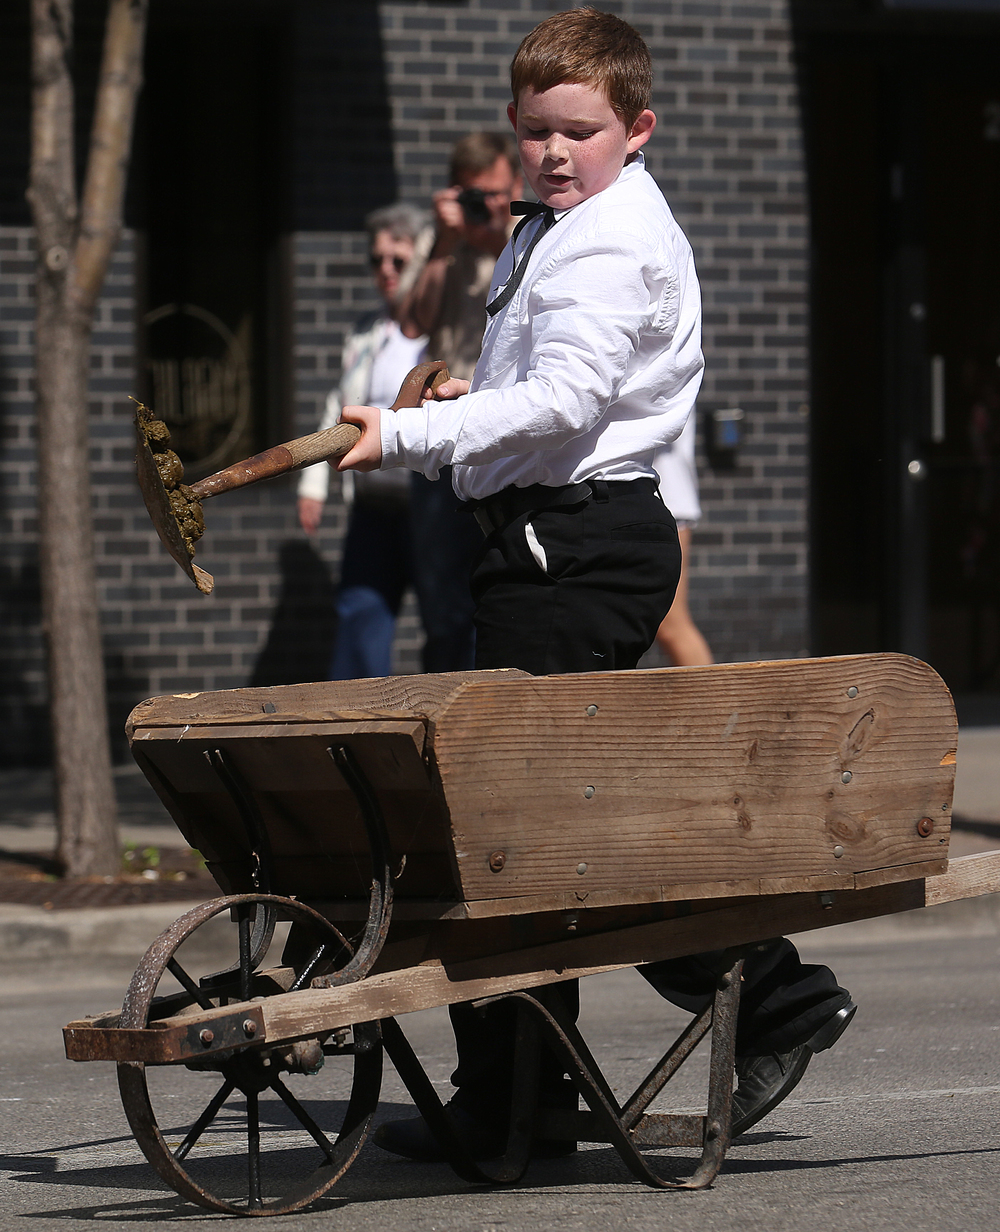 One of the most important jobs during the funeral procession was capably done by this young boy shoveling manure left by the horses on the pavement during the parade into his trusty wooden wheelbarrow. The casket of Lincoln was removed from the hearse and placed on a temporary bier in front of a large stage outside the Old State Capitol in downtown Springfield.  David Spencer/The State Journal-Register